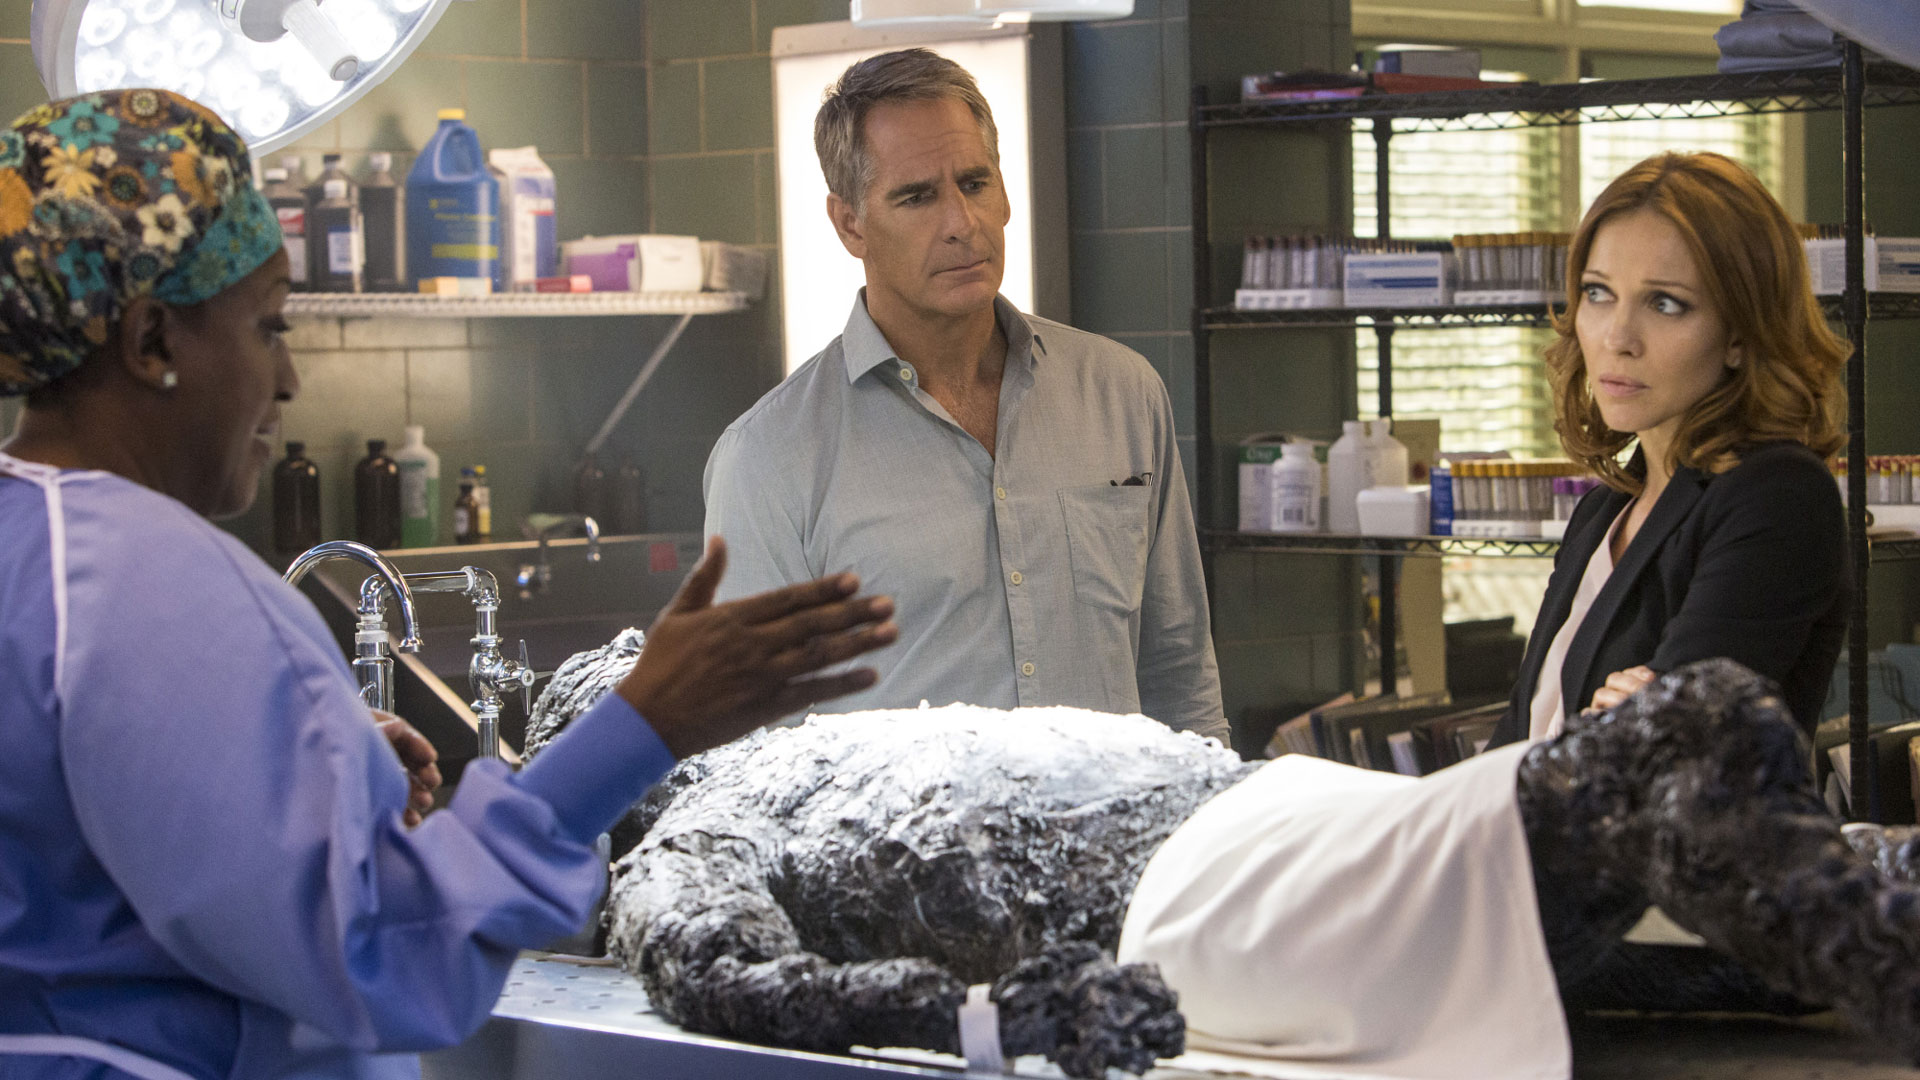 CCH Pounder as Dr. Loretta Wade and Scott Bakula as Dwayne Pride